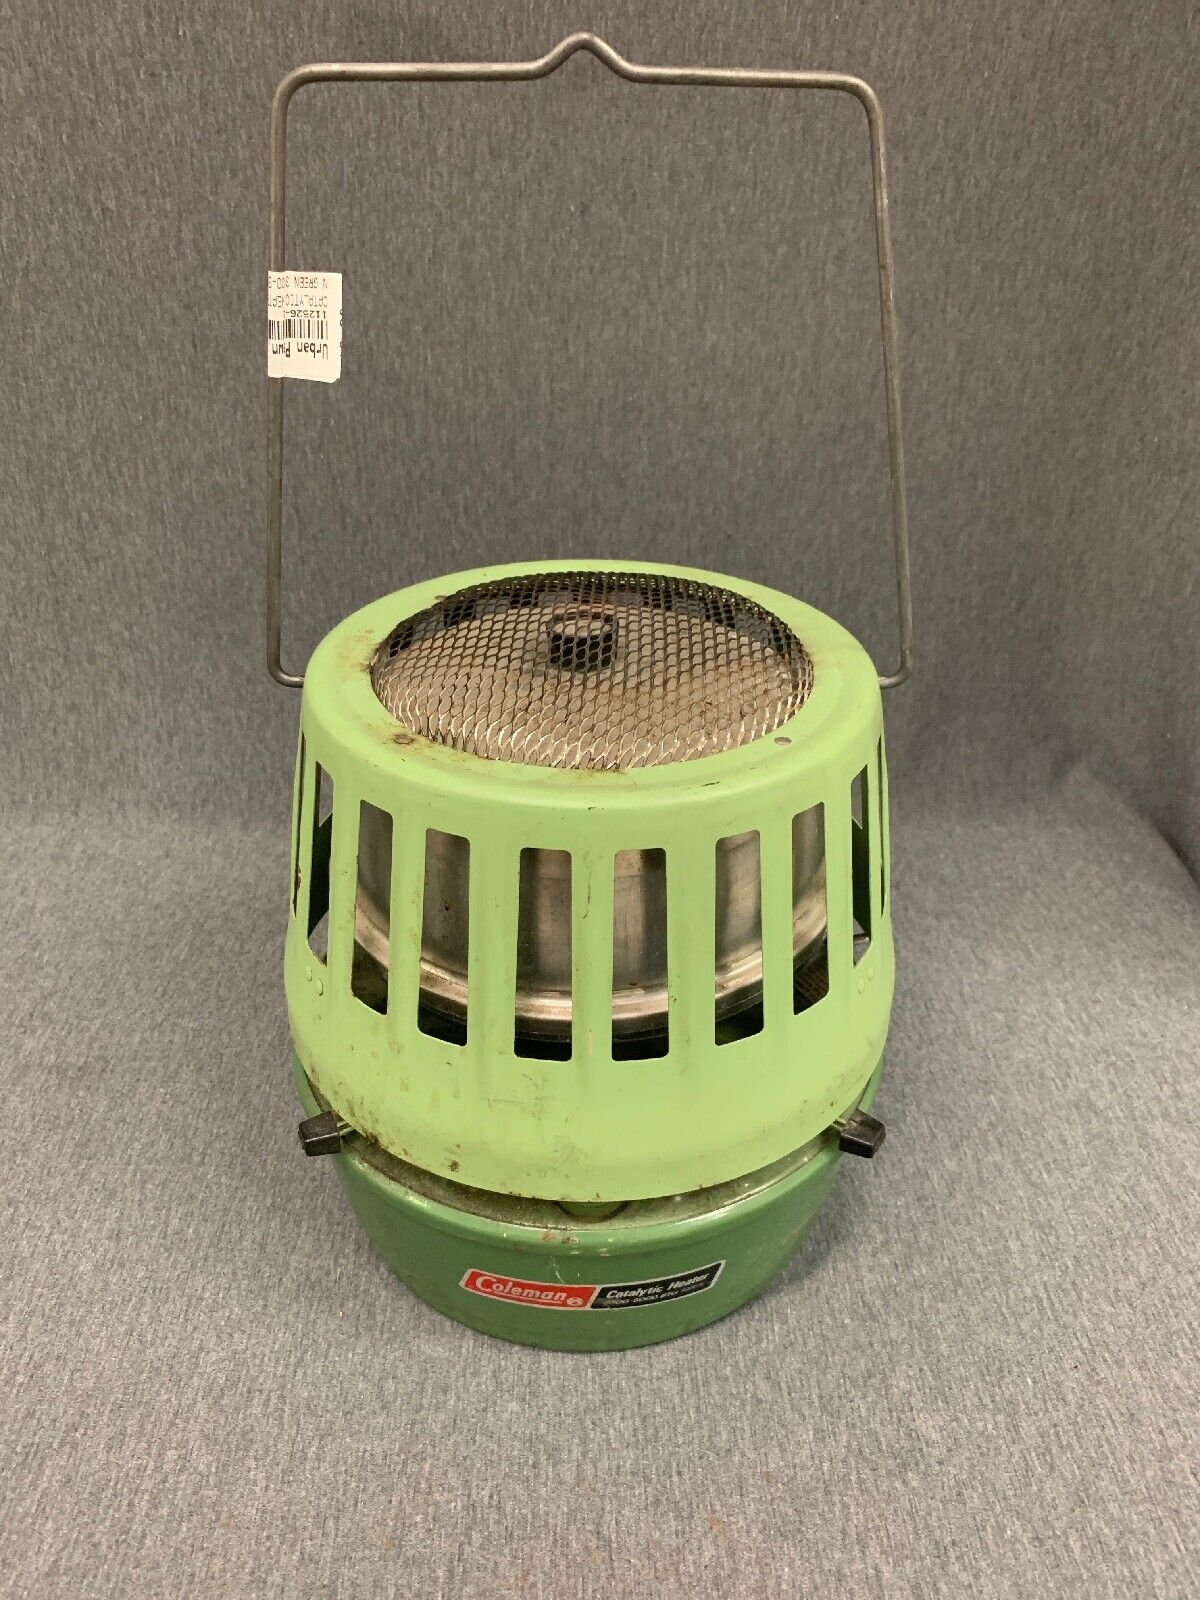 Vintage Coleman 513A Catalytic Heater 3000-5000 BTU 1 72